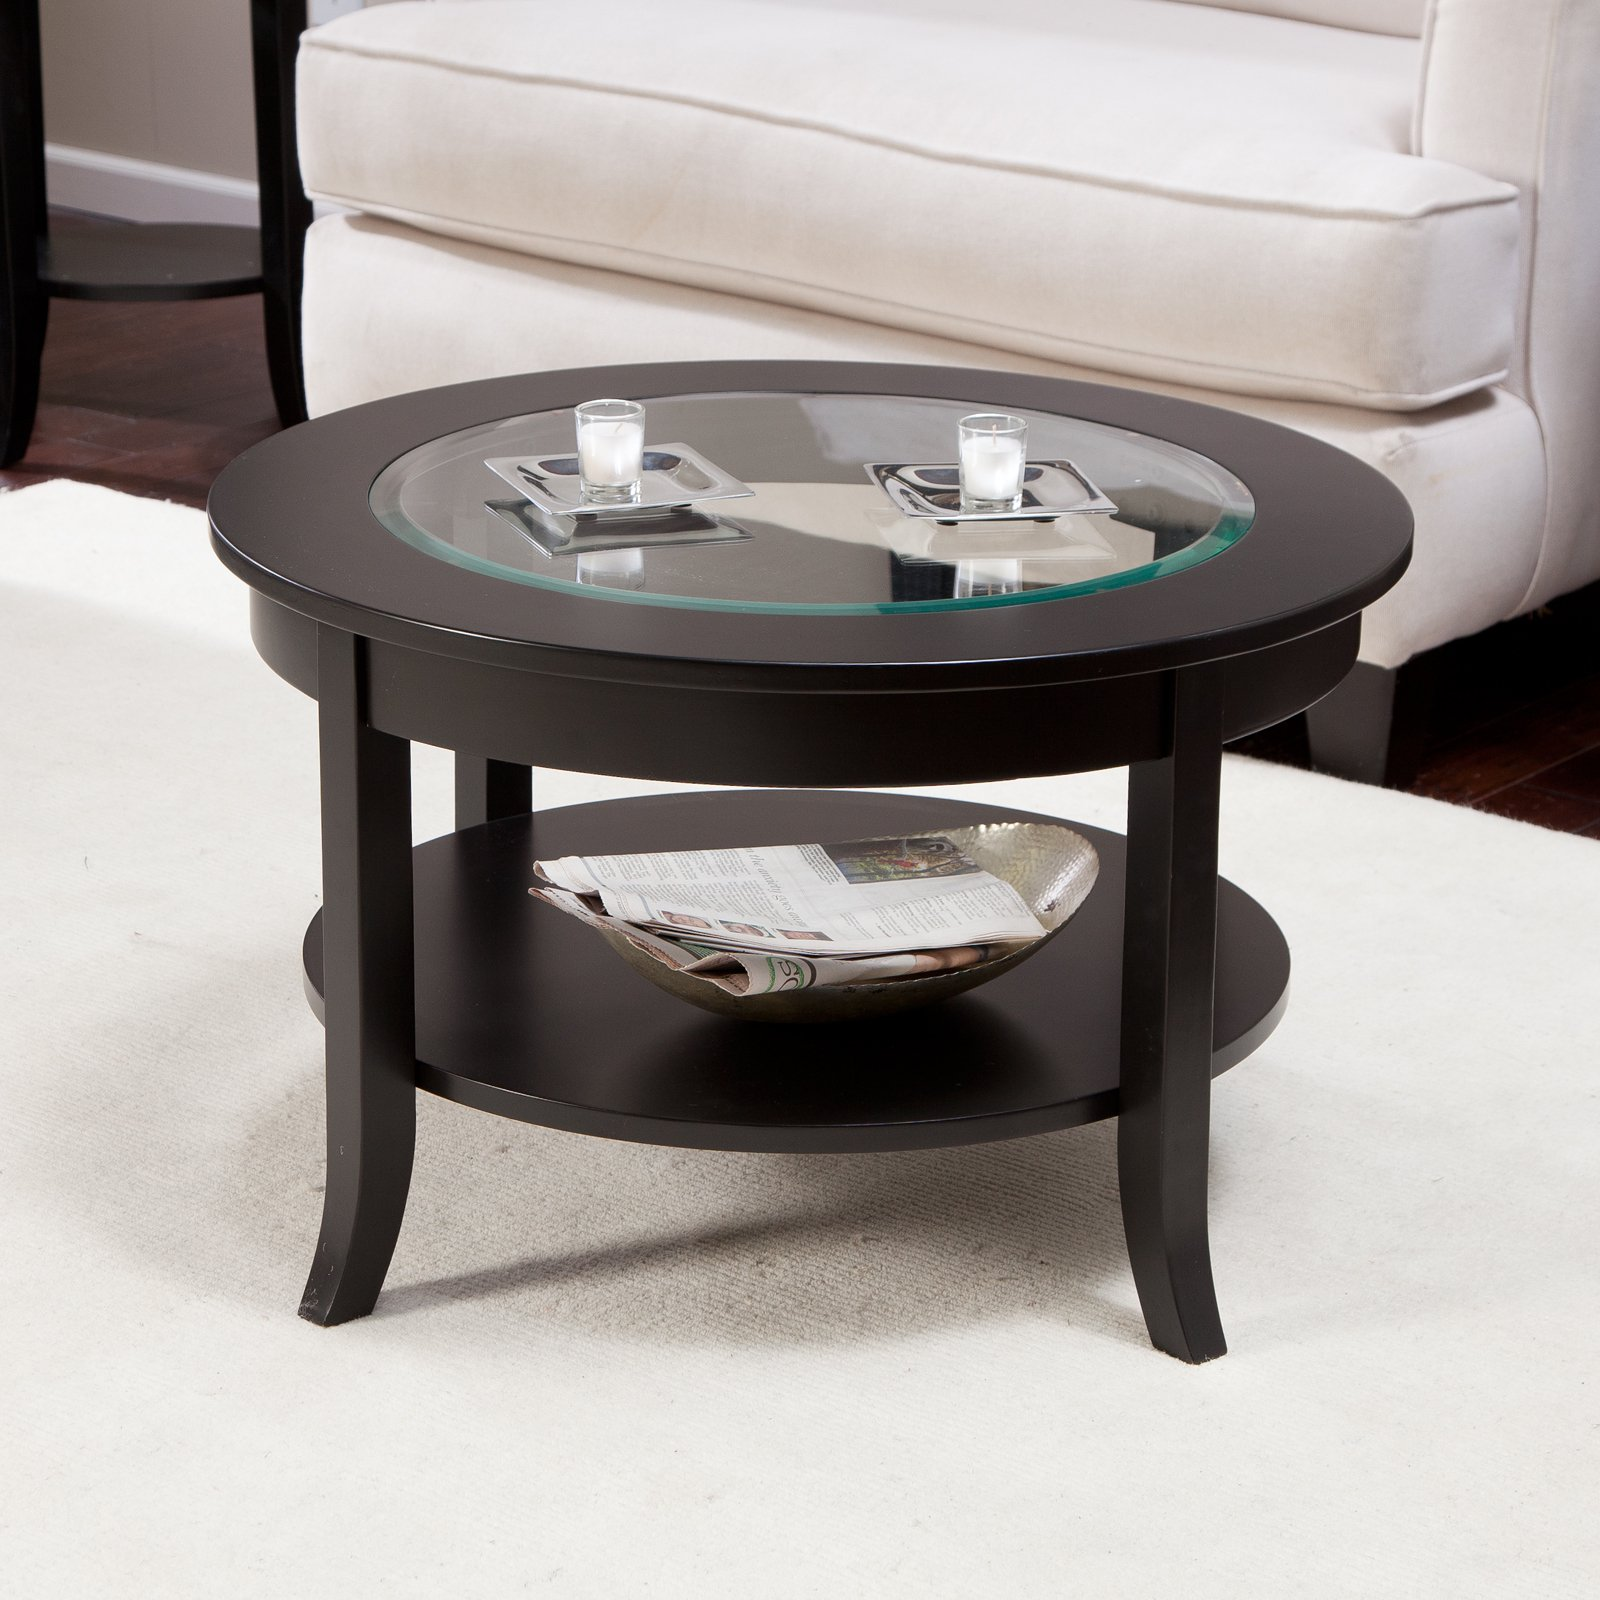 Round Coffee Tables On Hayneedle With Glass On Top And 4 Legs 30 Inch Round Coffee Table (View 8 of 9)